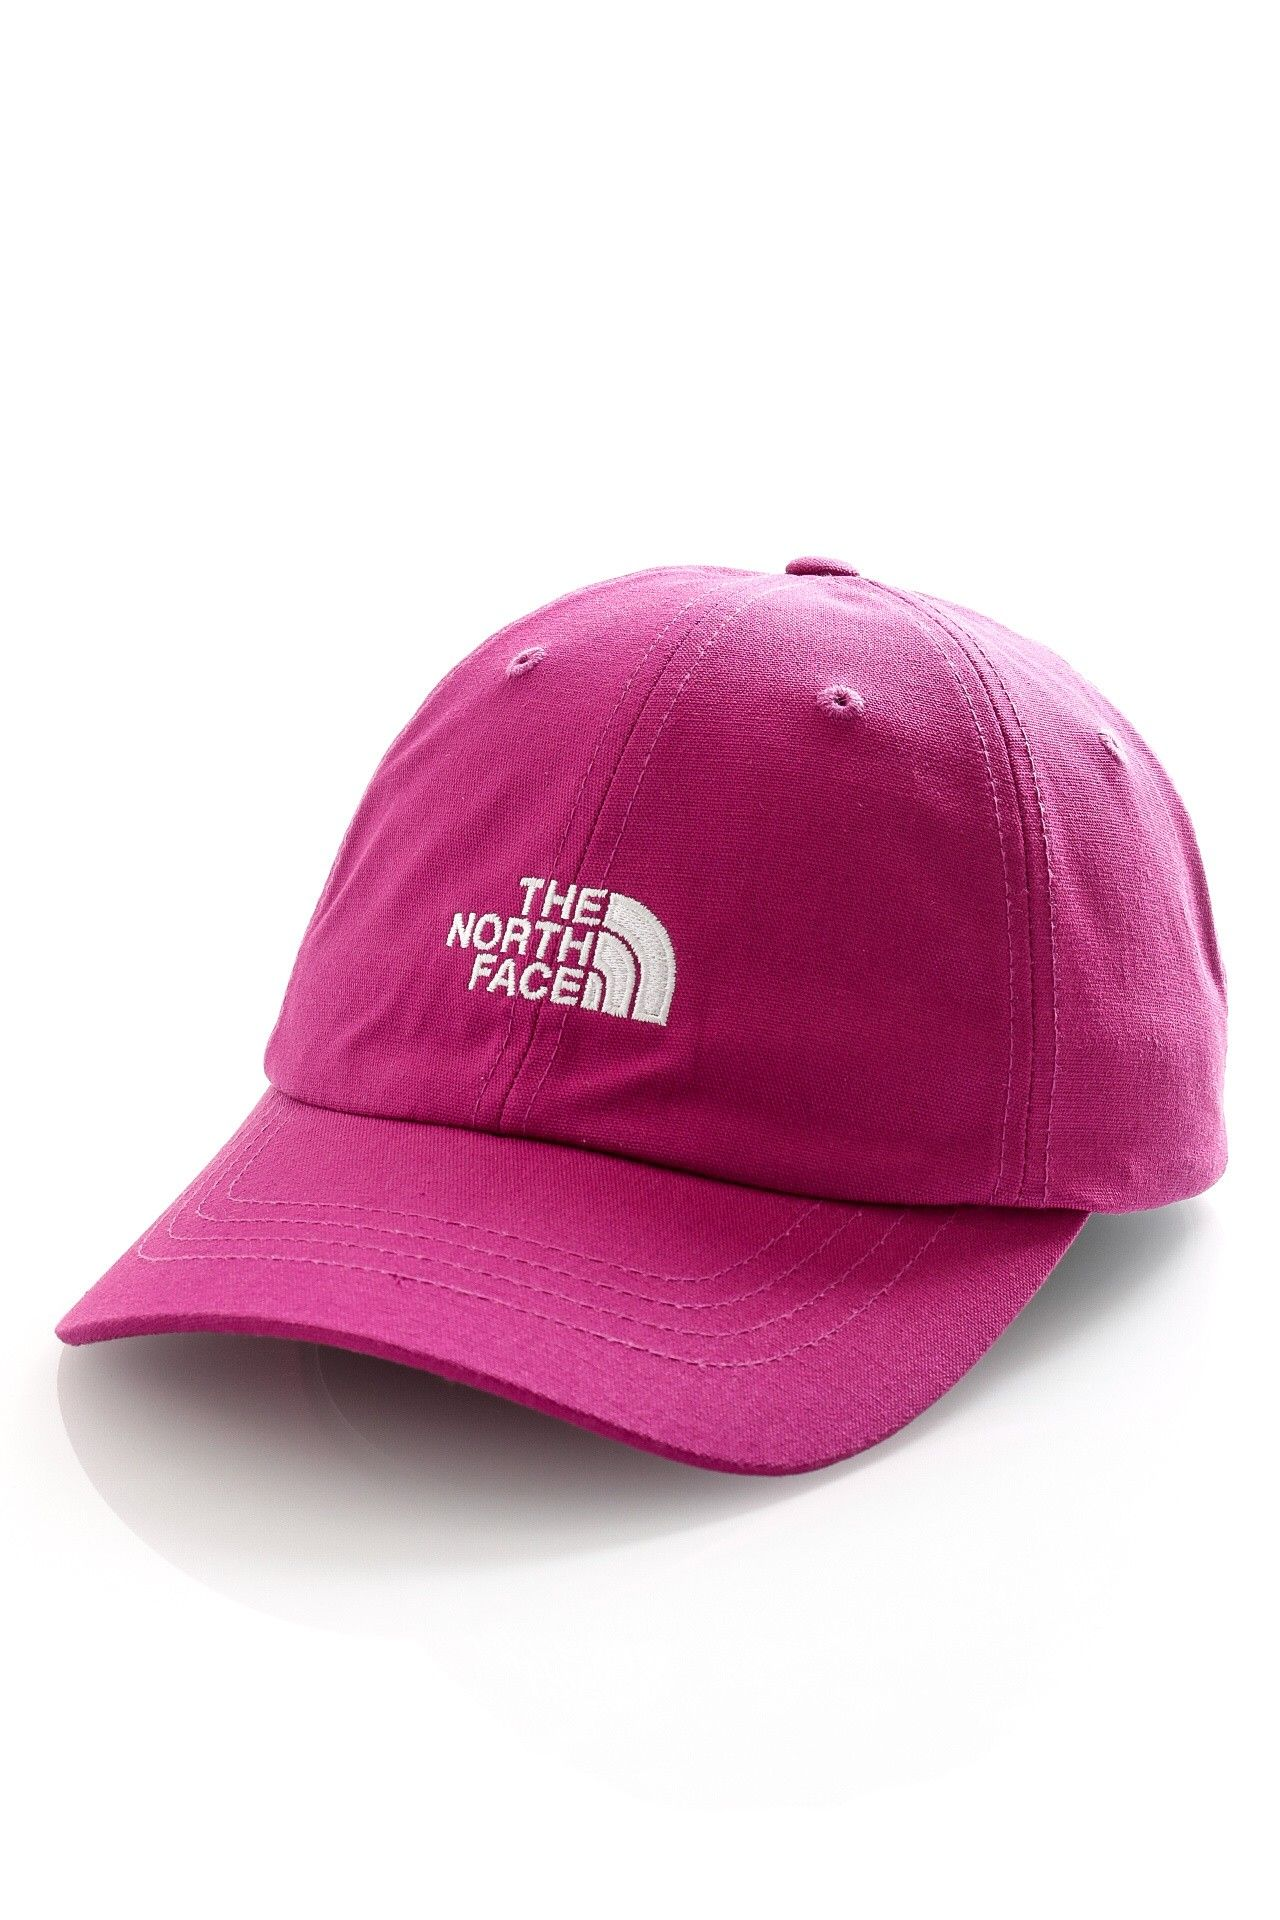 Afbeelding van The North Face Dad Cap Norm Hat Wild Aster Purple NF0A3SH3ZDN